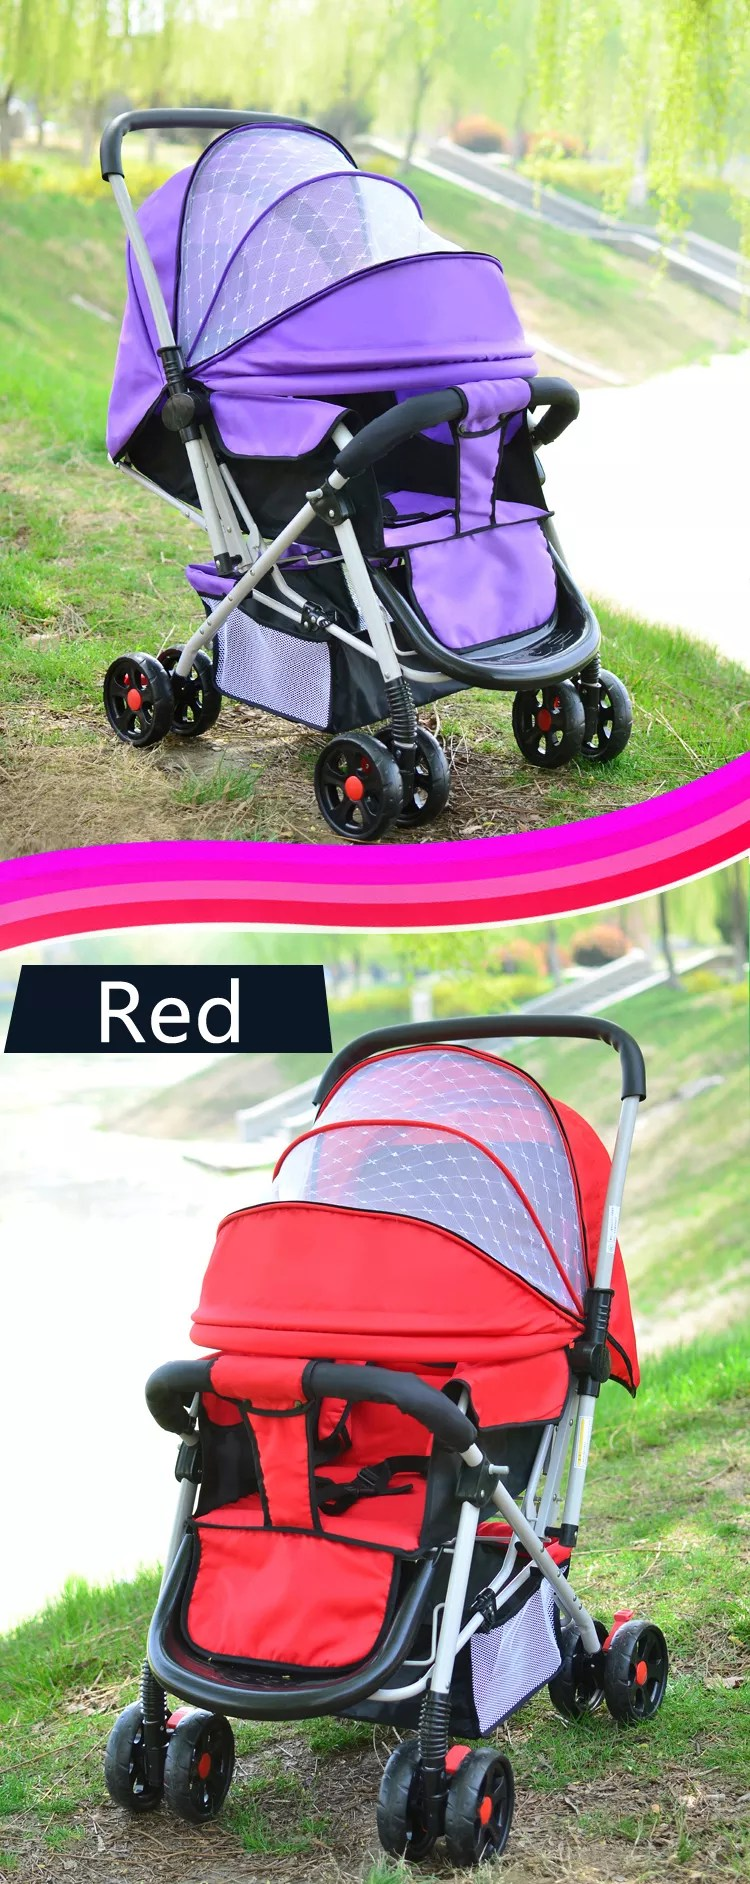 Kinderwagen Baby Born Oem 2017 Cheap Bright Colored Fashion Baby Born Kinderwagen Carriage For Sale Baby Jogger Triple Stroller Buy Baby Jogger Triple Stroller Baby Born